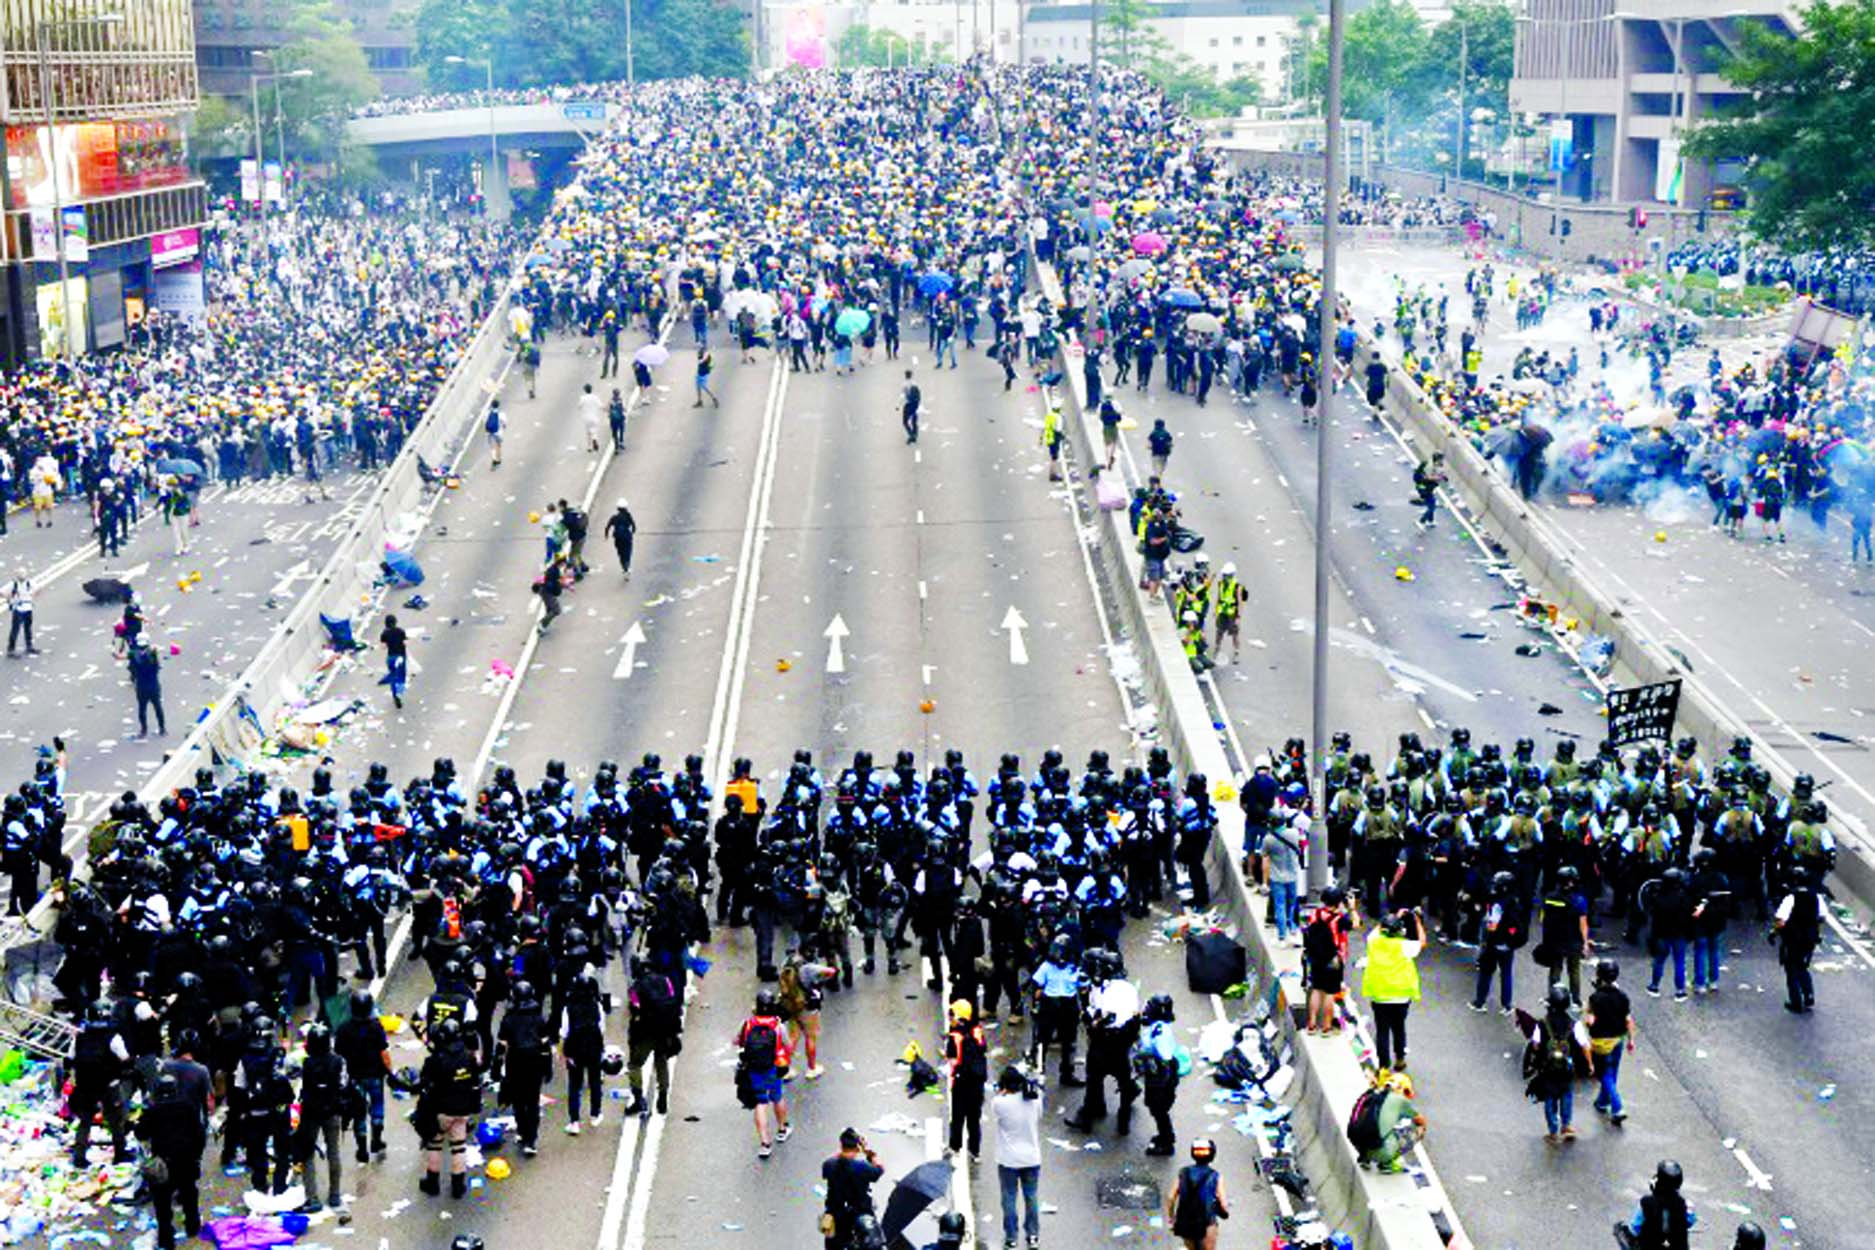 HK's expat police become focus of protester rage